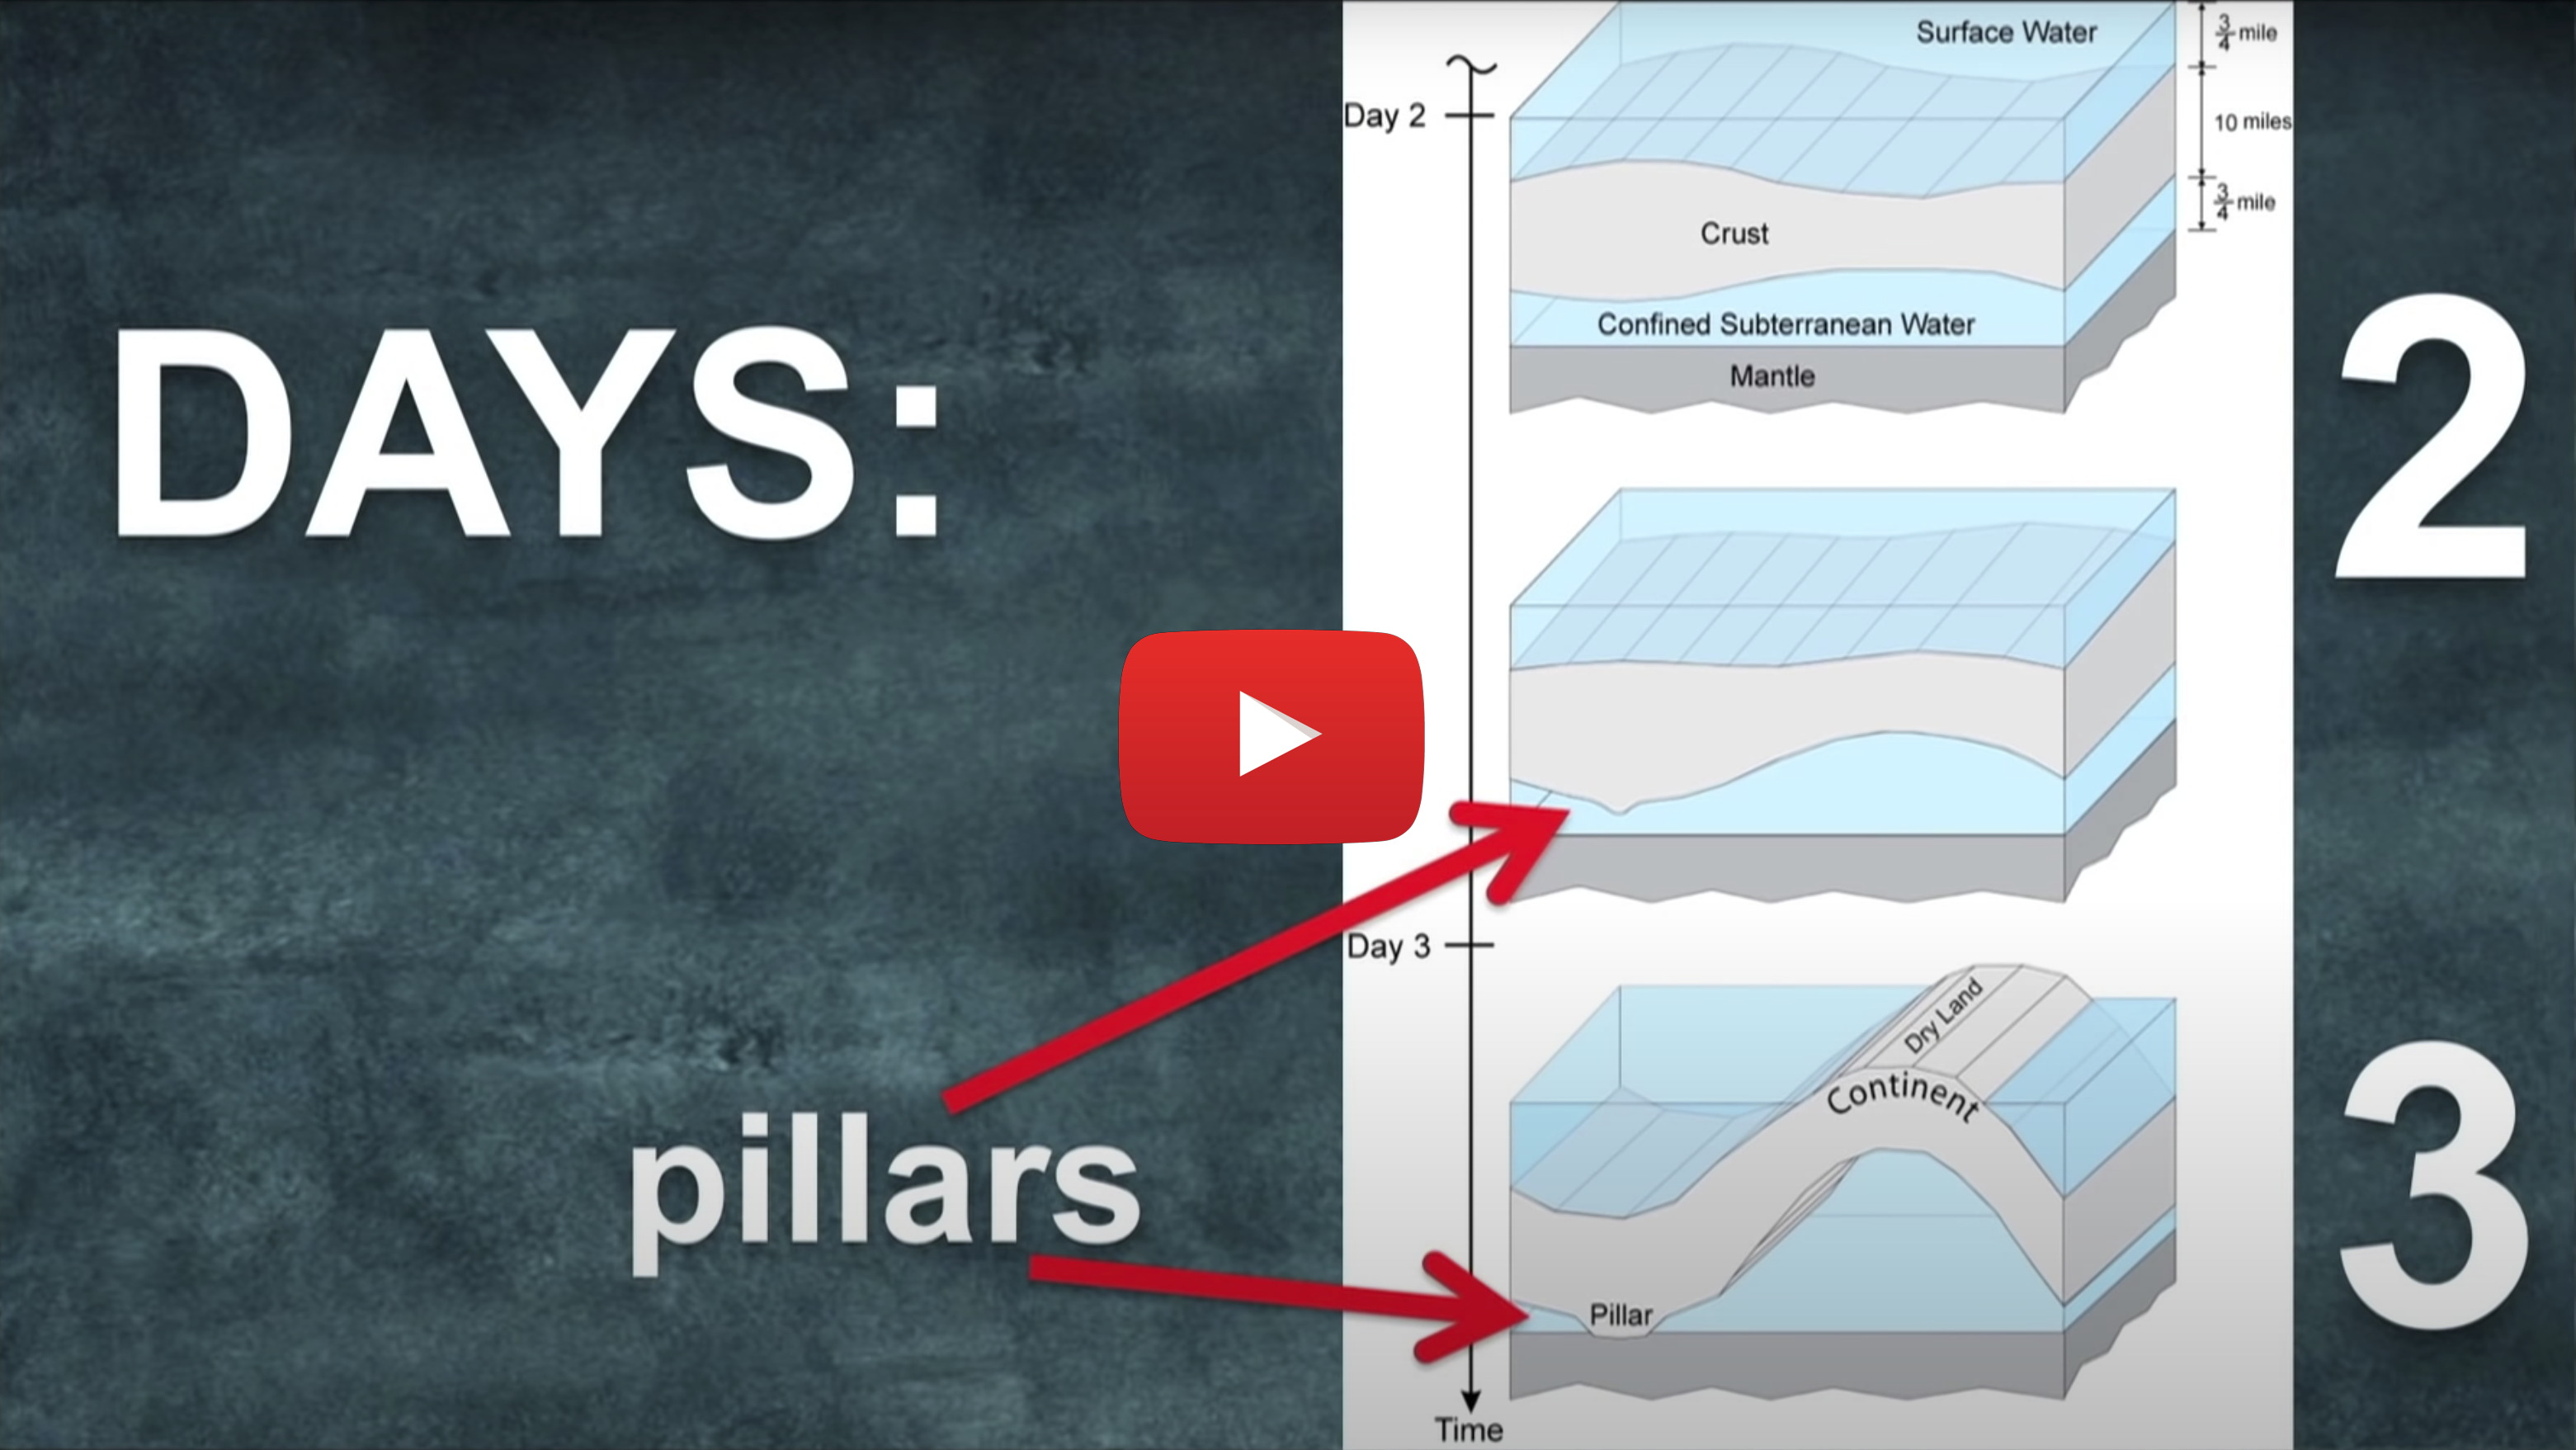 In God's heliocentric creation, what are the pillars of earth that He made in Days 2 & 3?